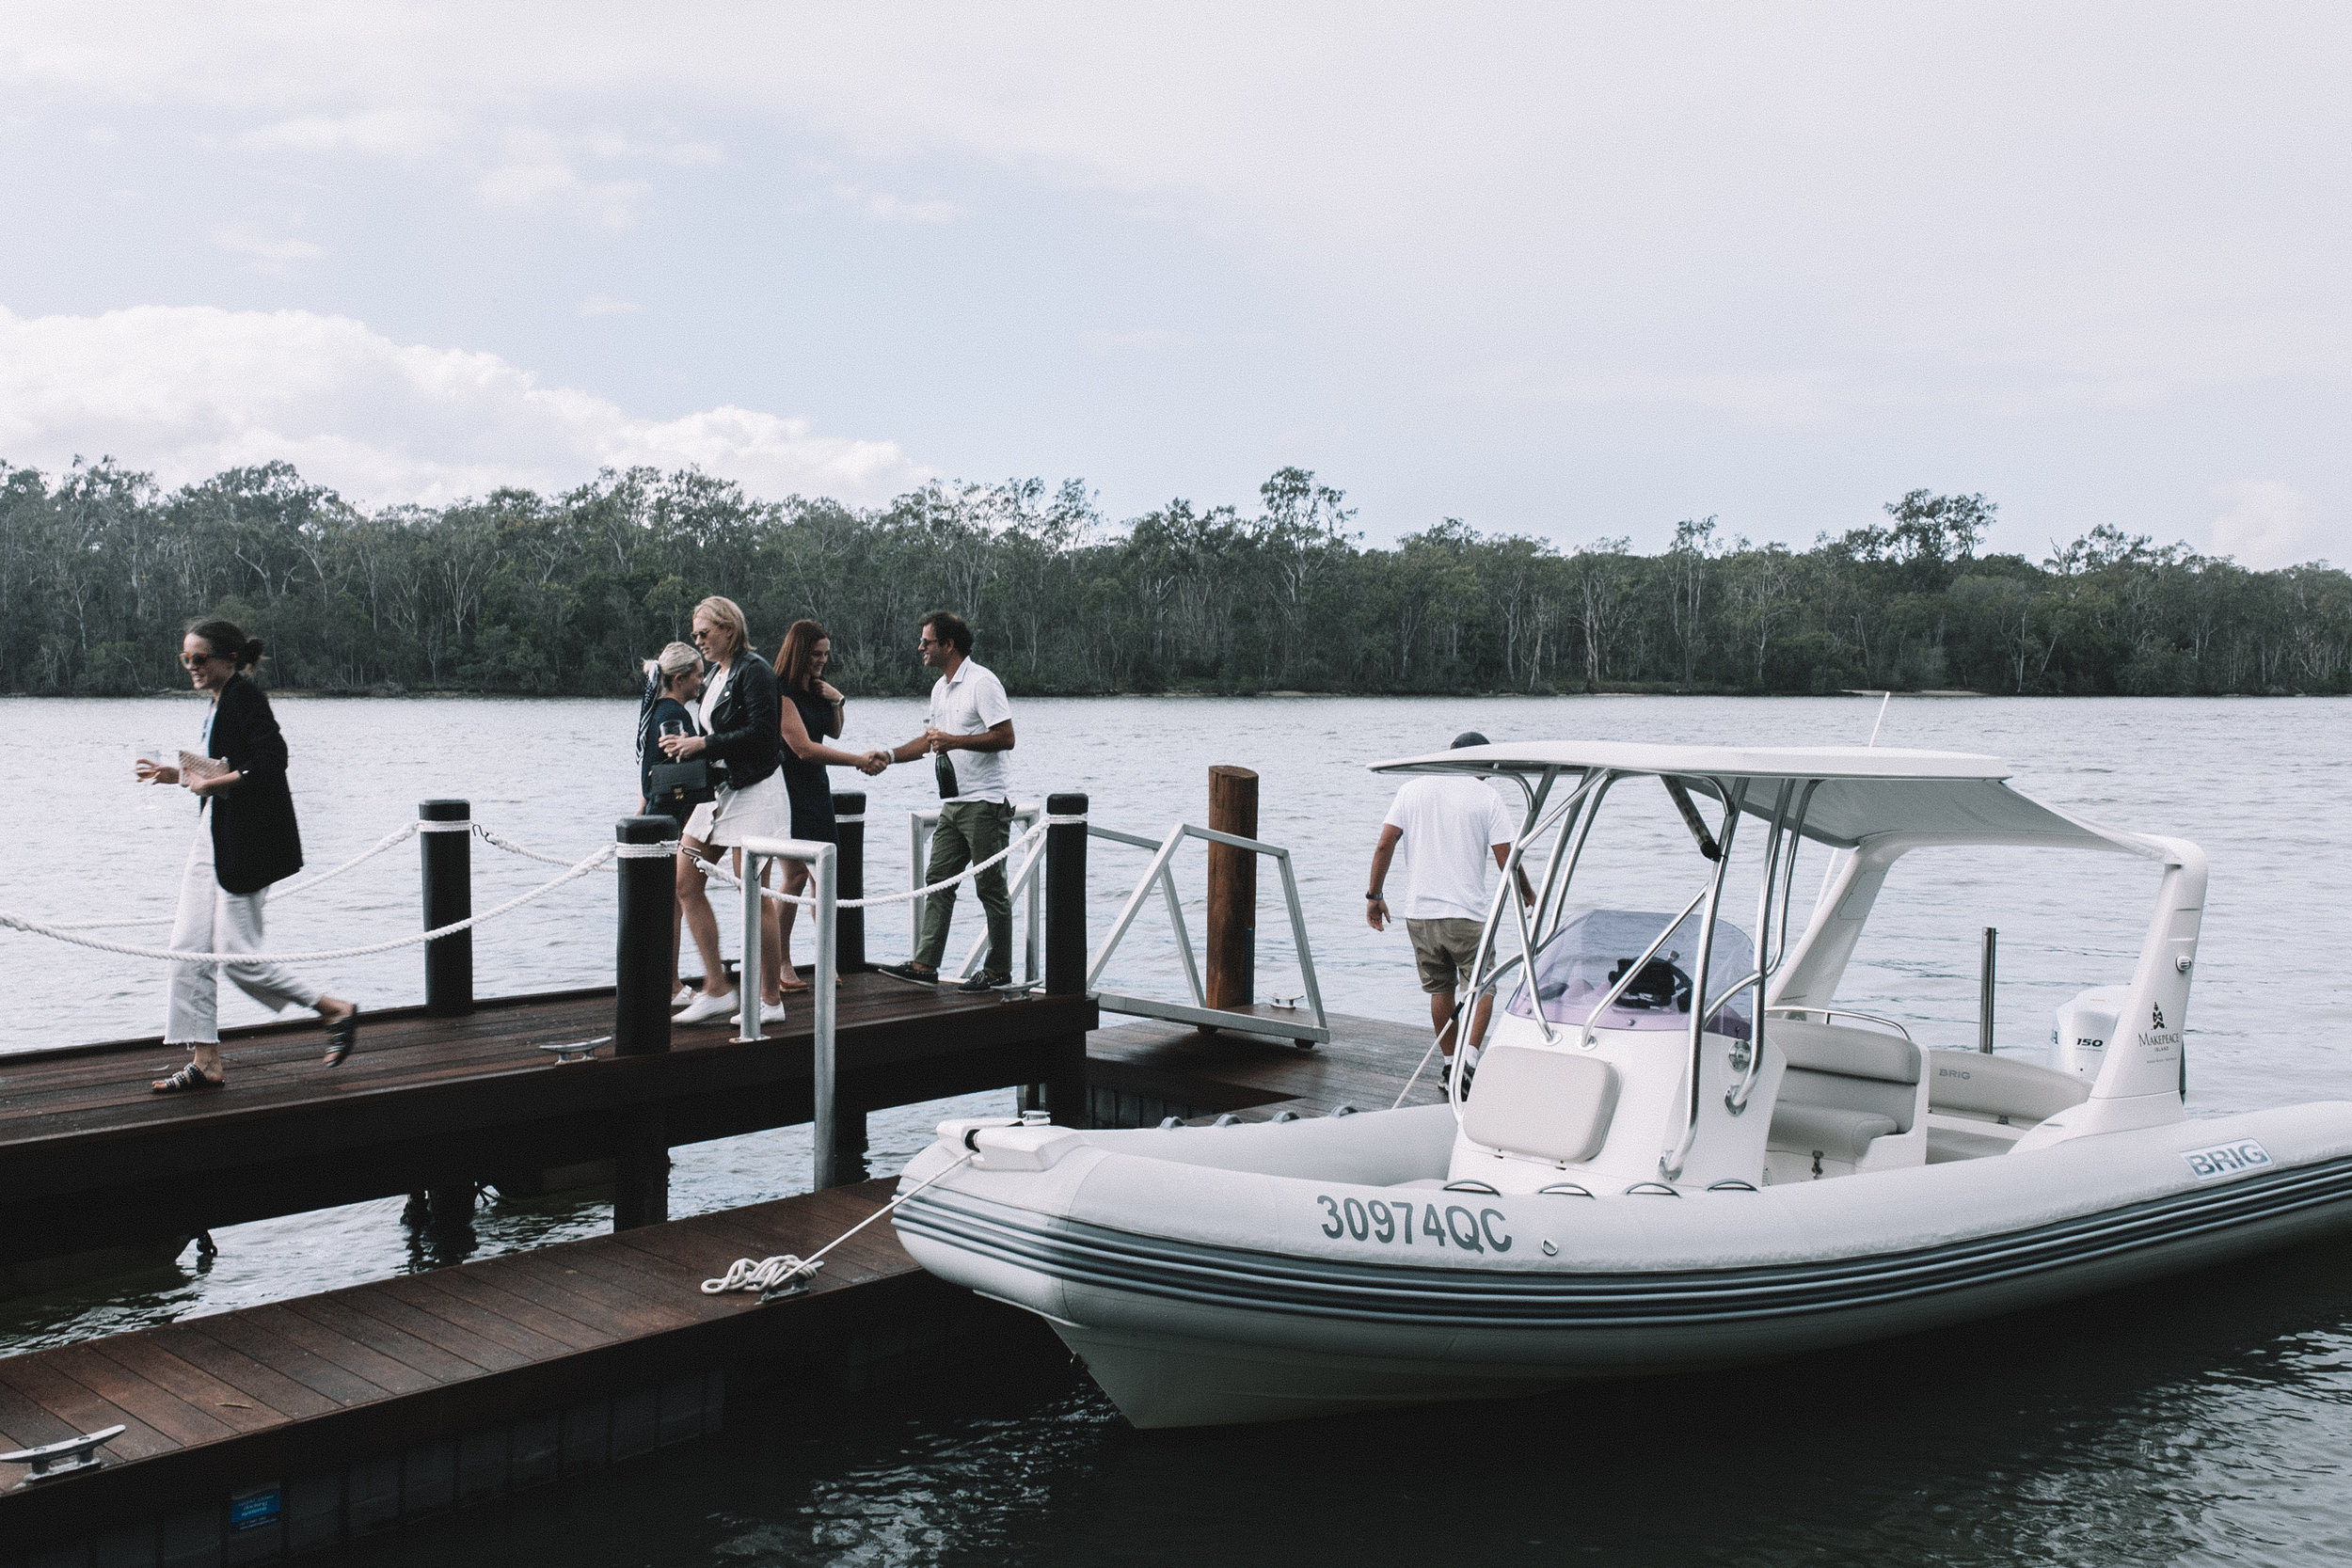 Arriving at the secret location along Noosa River